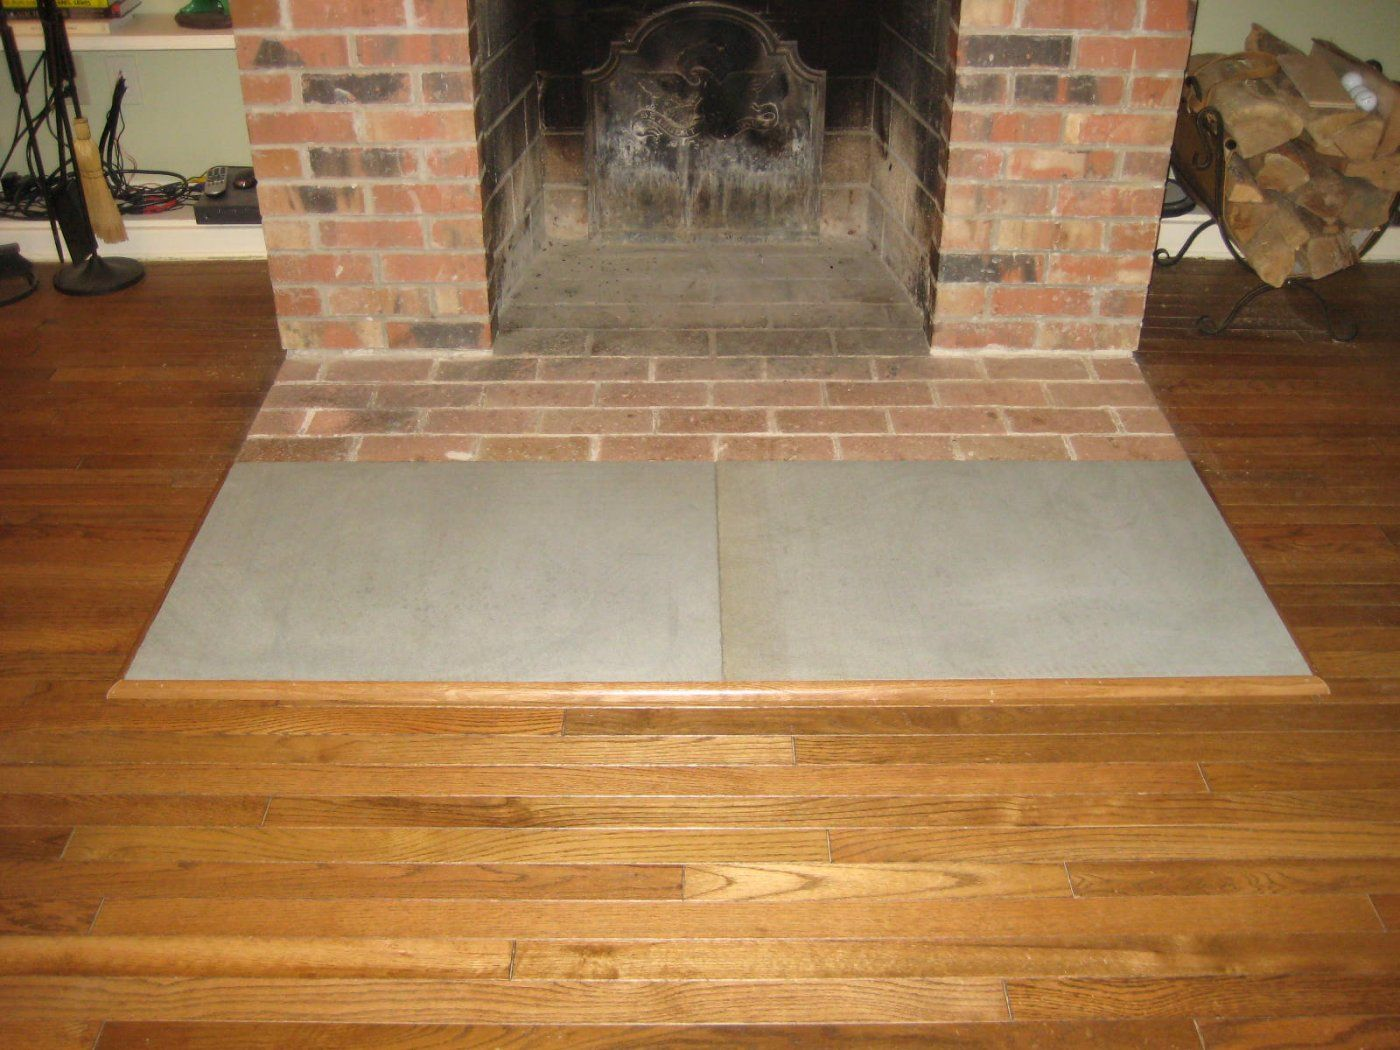 IMG_3233.jpg - Rear Vent Wood Stove Through Masonry Fireplace Hearth.com Forums